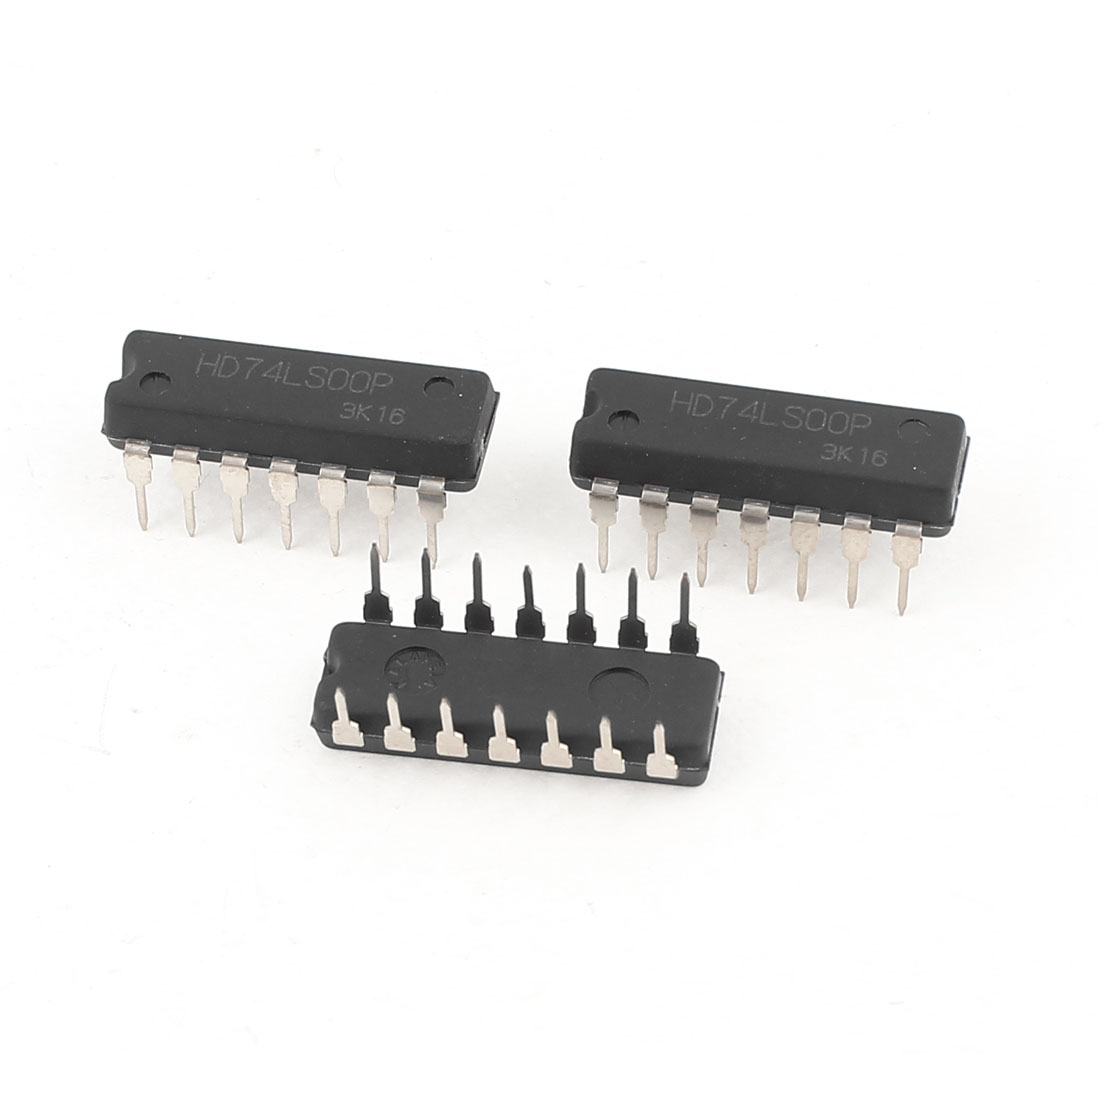 3pcs HD74LS00P DIP Type 14Pins IC Four 3-Input Positive NAND Gates